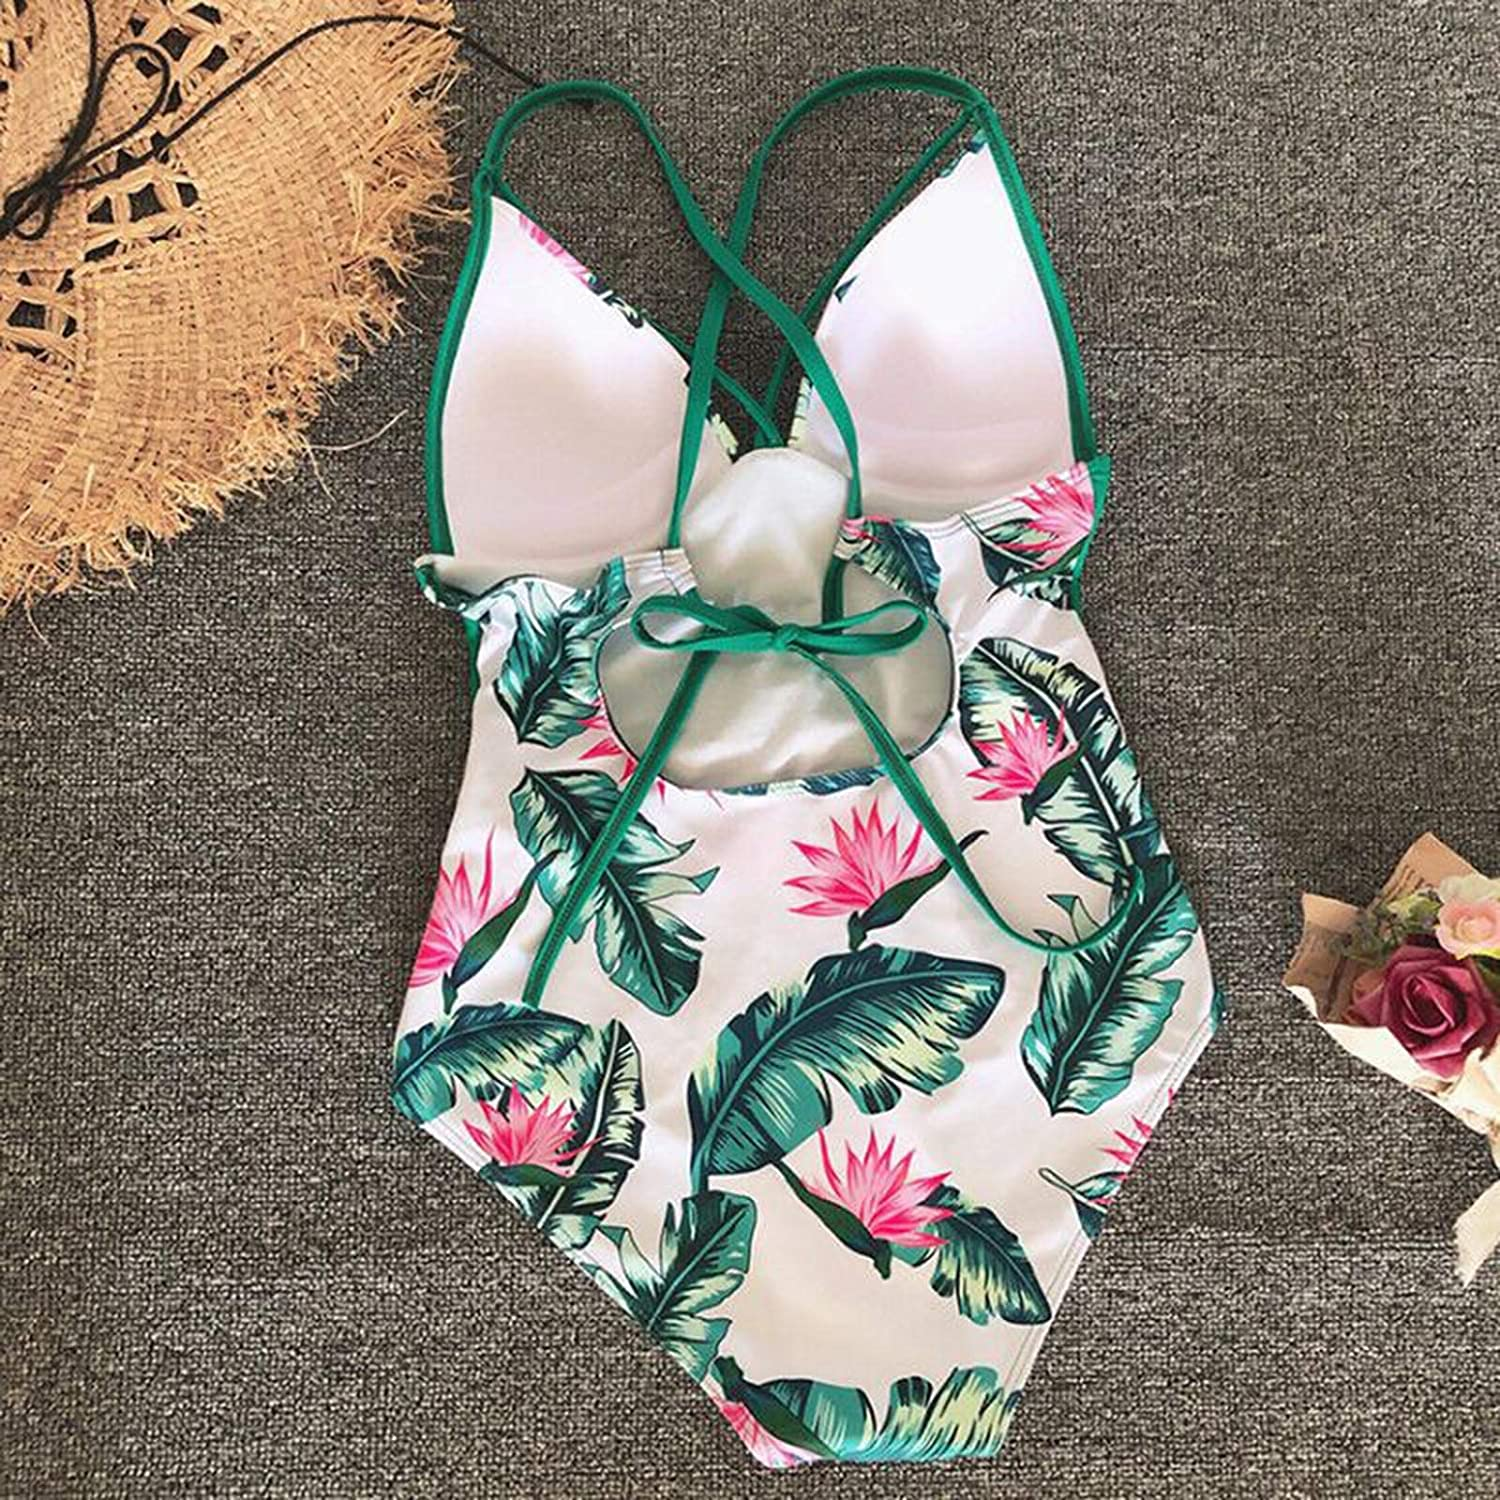 iCJJL Swimsuits for Women 1 Piece Bathing Suits Strap One-Piece Swimsuit Temperament Big Breast Swimming V-Neck Bikini (Small,Green)